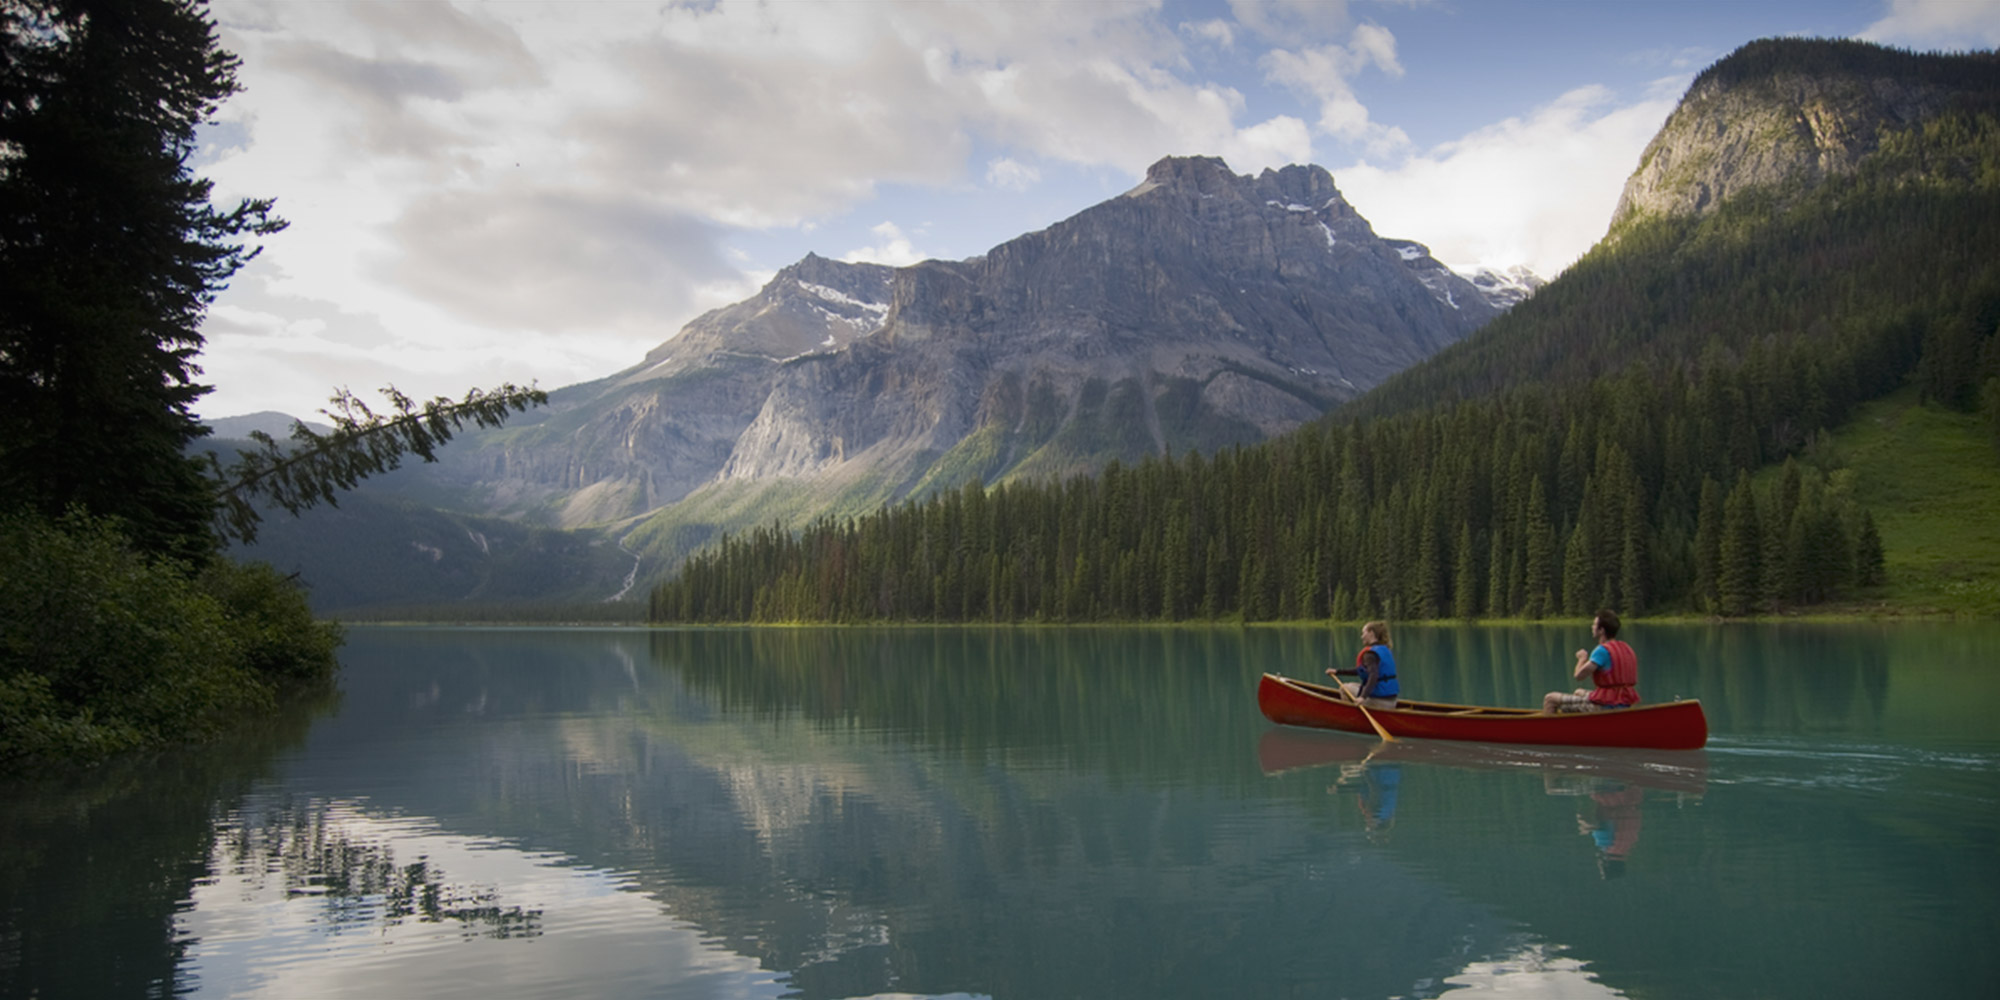 Credit: Destinations BC - Canoeing against iconic Canadian backdrop